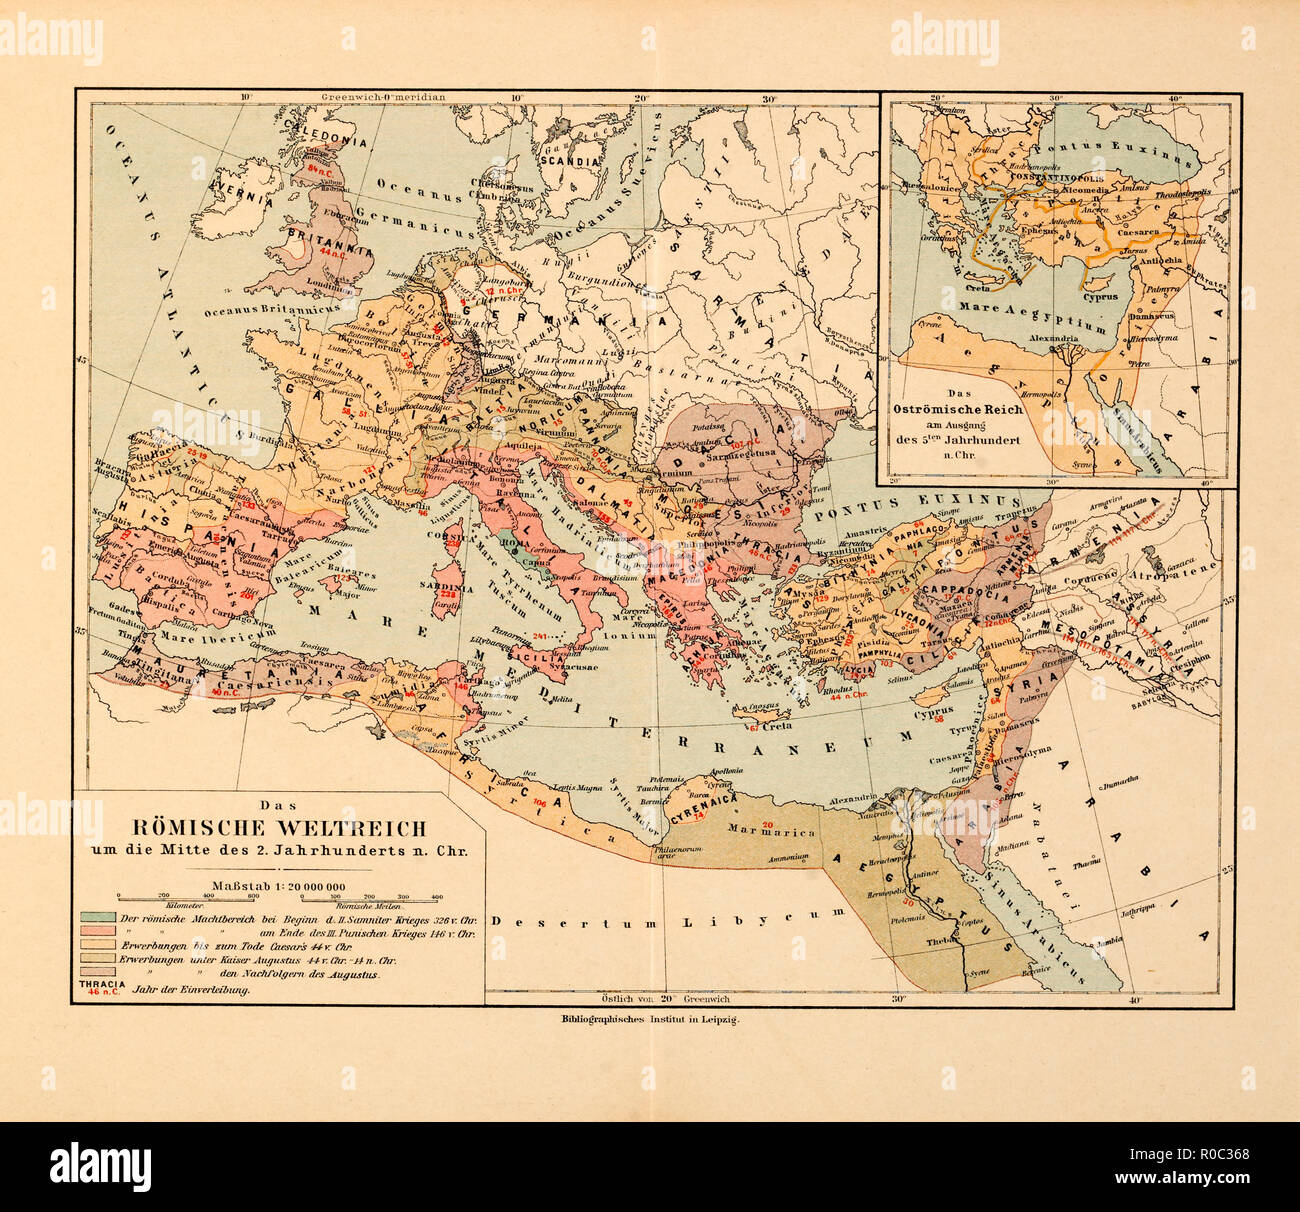 Map, Roman Empire around the middle of the 2nd century AD, Germany - Stock Image